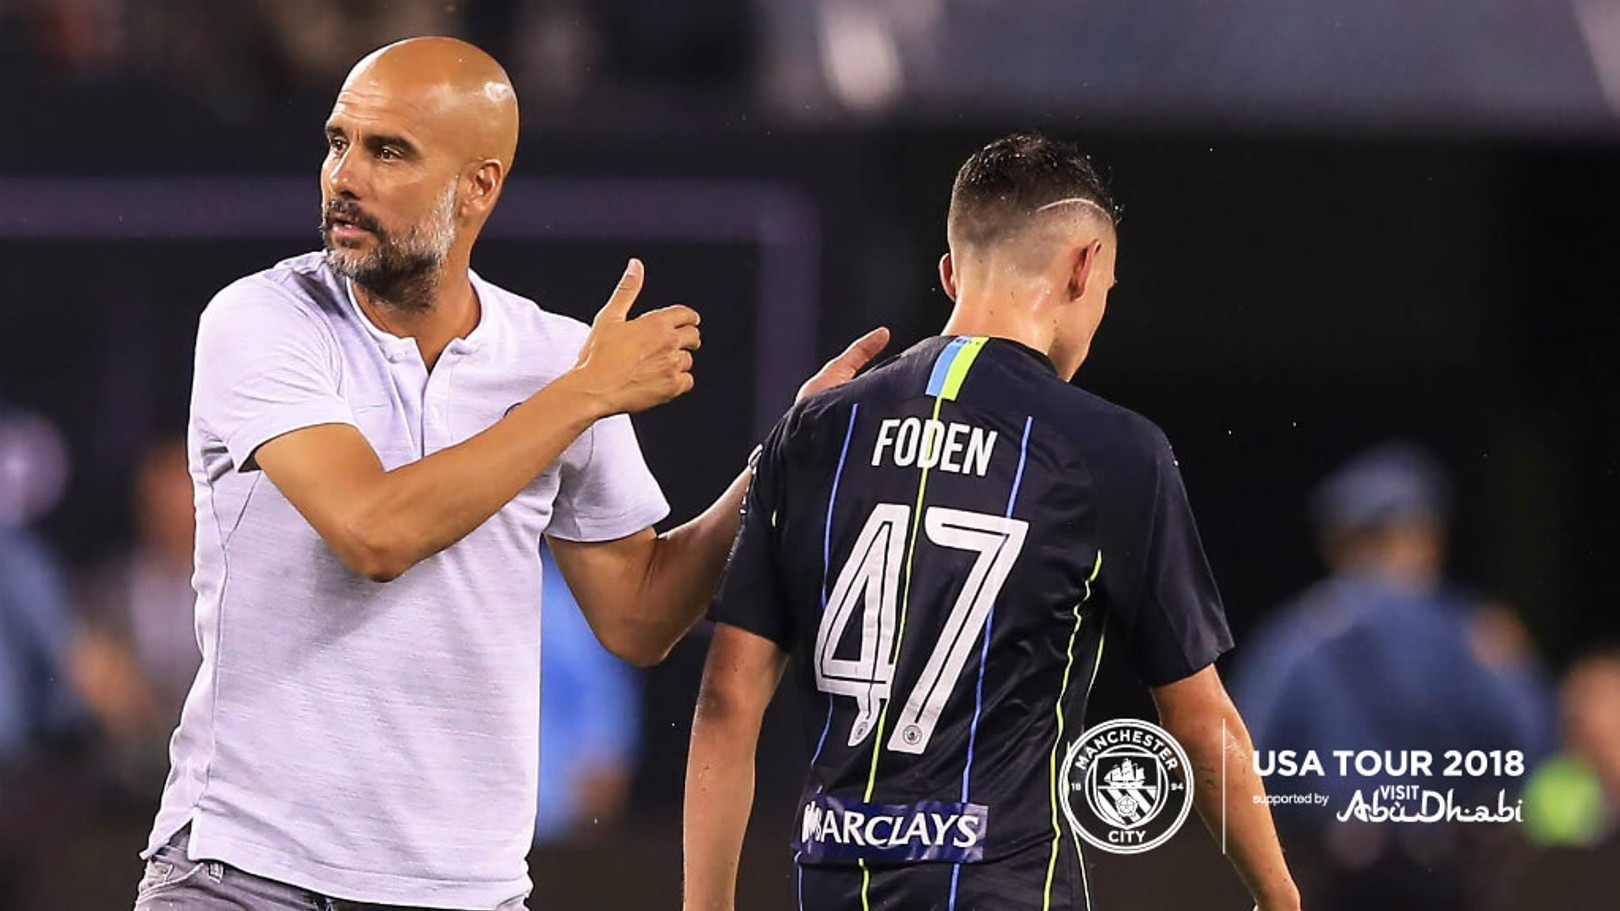 IMPRESSED: Pep Guardiola said he could not be more proud of his young City side's International Champions Cup display against Liverpool.